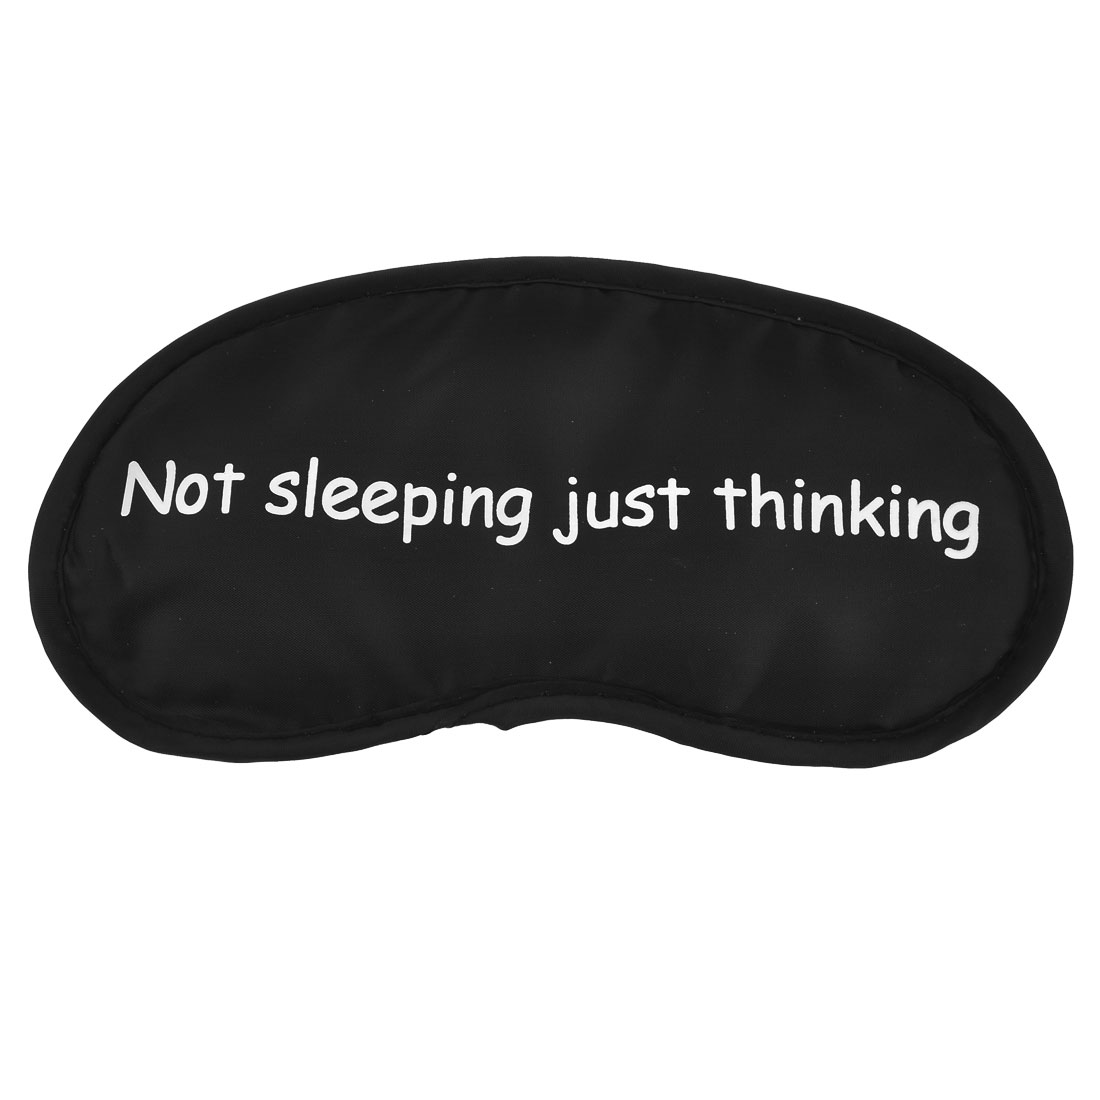 Travel Sleep Blindfold Letters Printed Elastic Band Eyepatch Eye Mask Black White